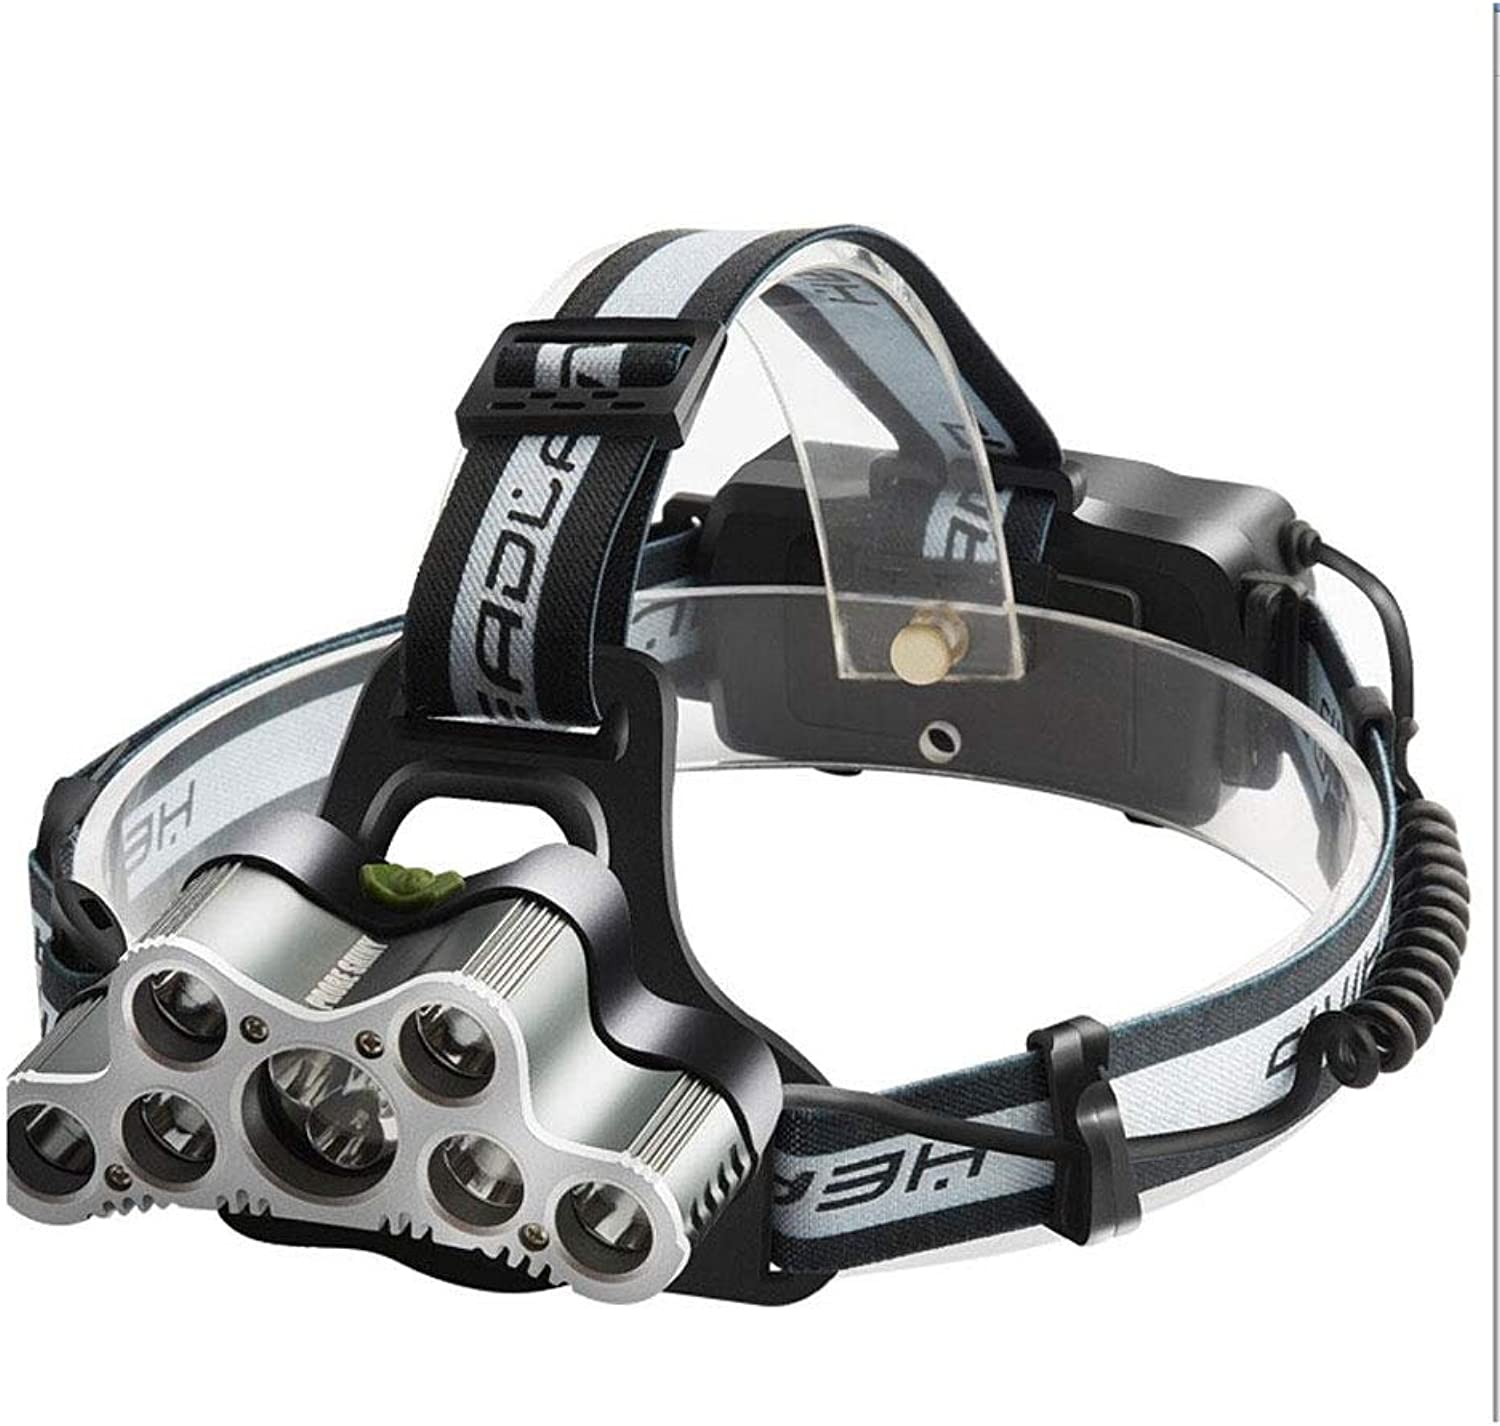 Detecting High-Power Glare Long-Range Charging Headlamp Super Bright T6 Wick Head Wearing Miner's Lamp (color   White)